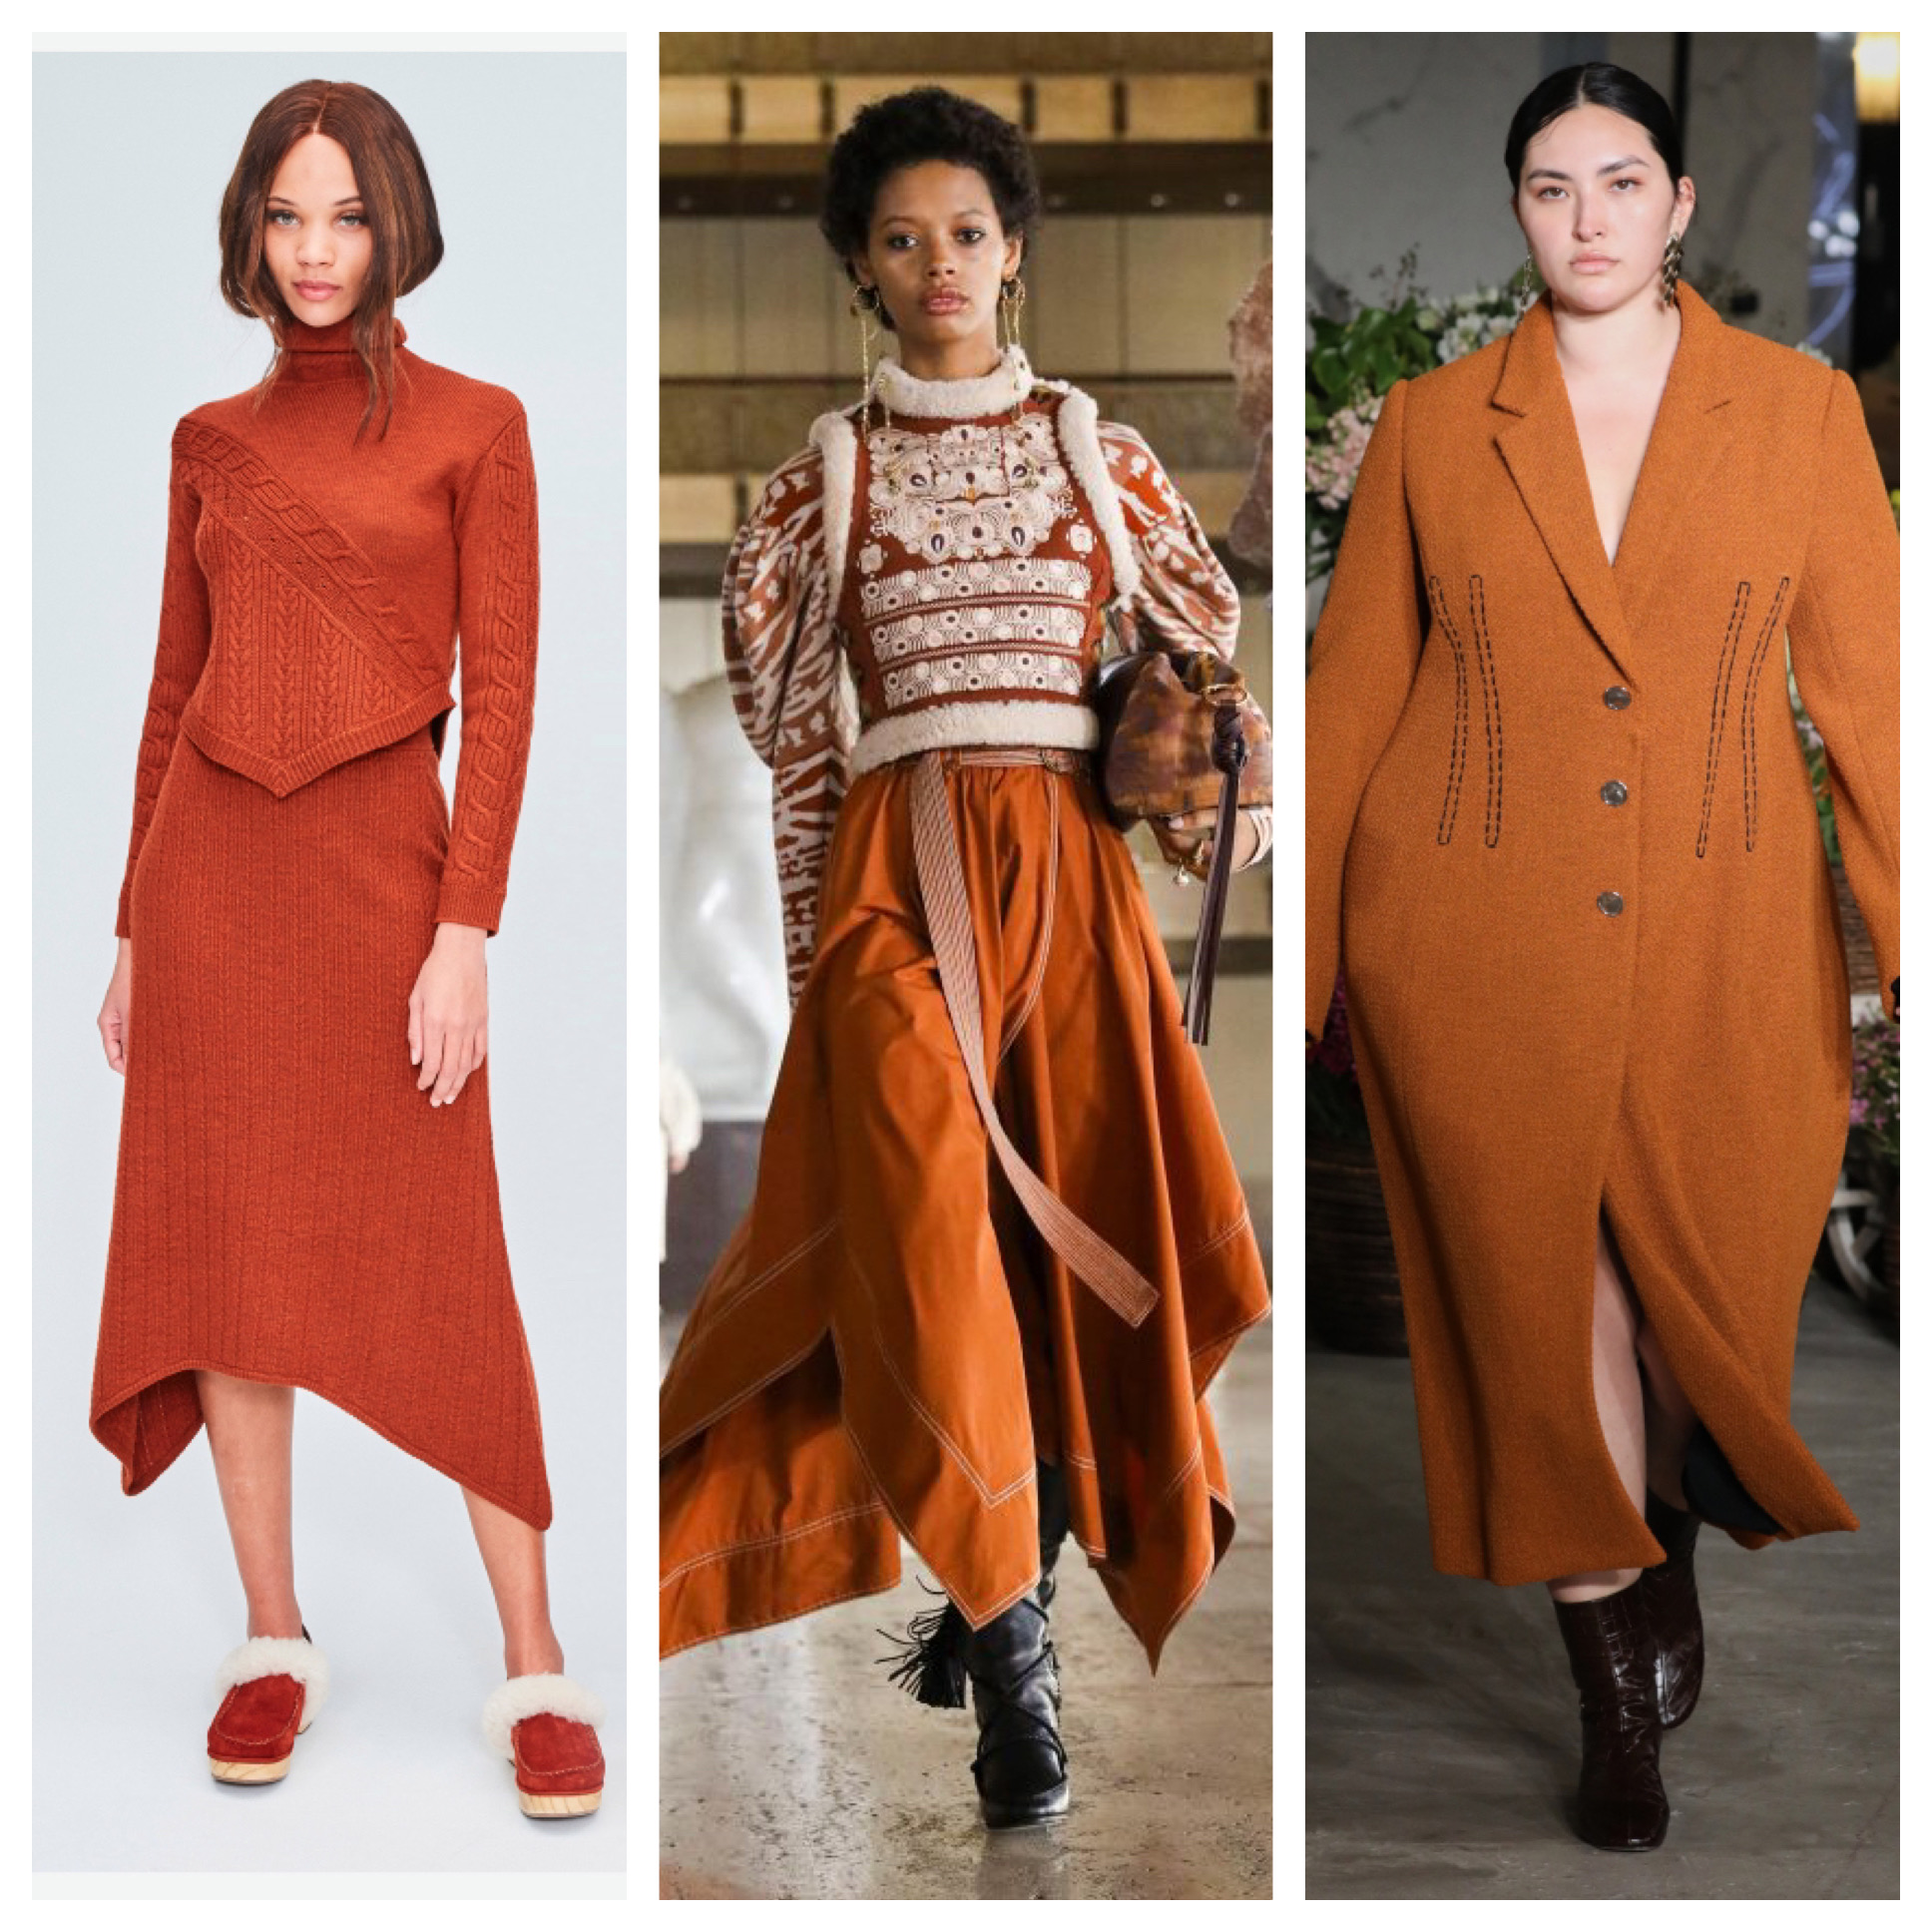 NYFW Fall 2021 Trends: Pantone Colors on the Runway